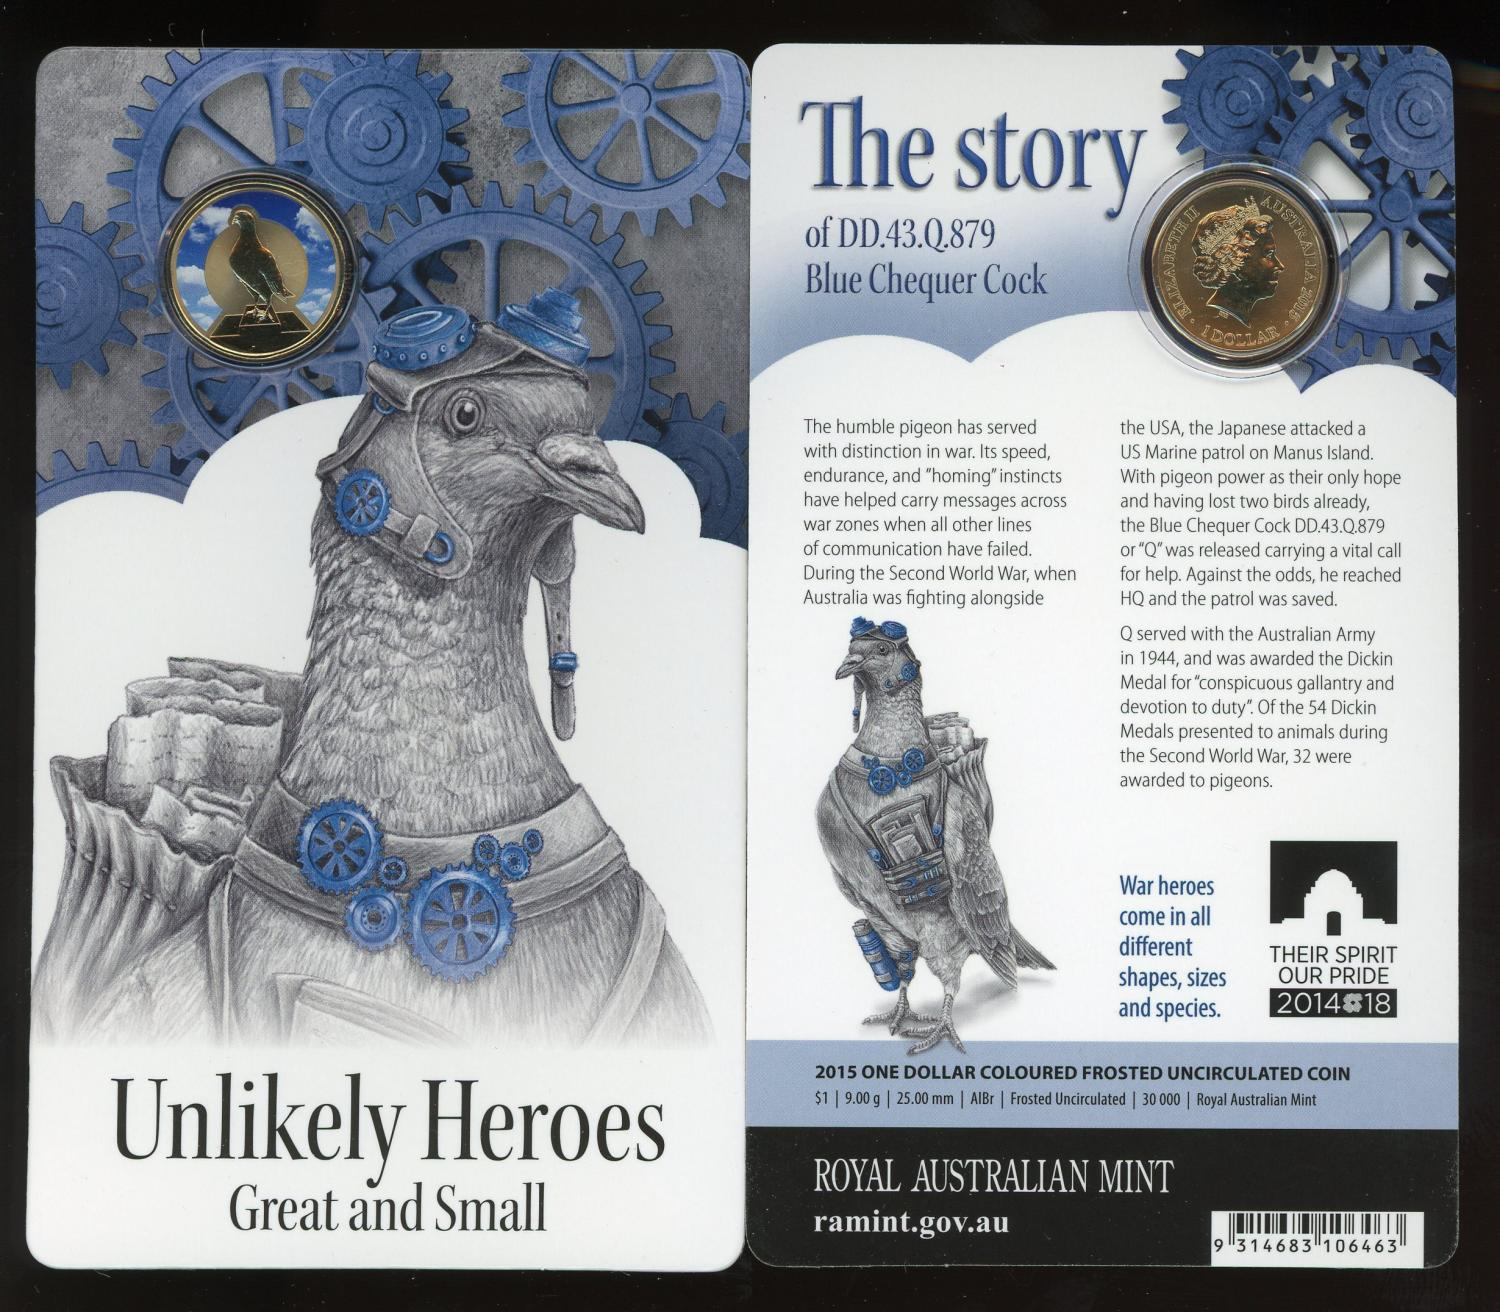 Thumbnail for 2015 Unlikely Heroes - Blue Chequer Cock